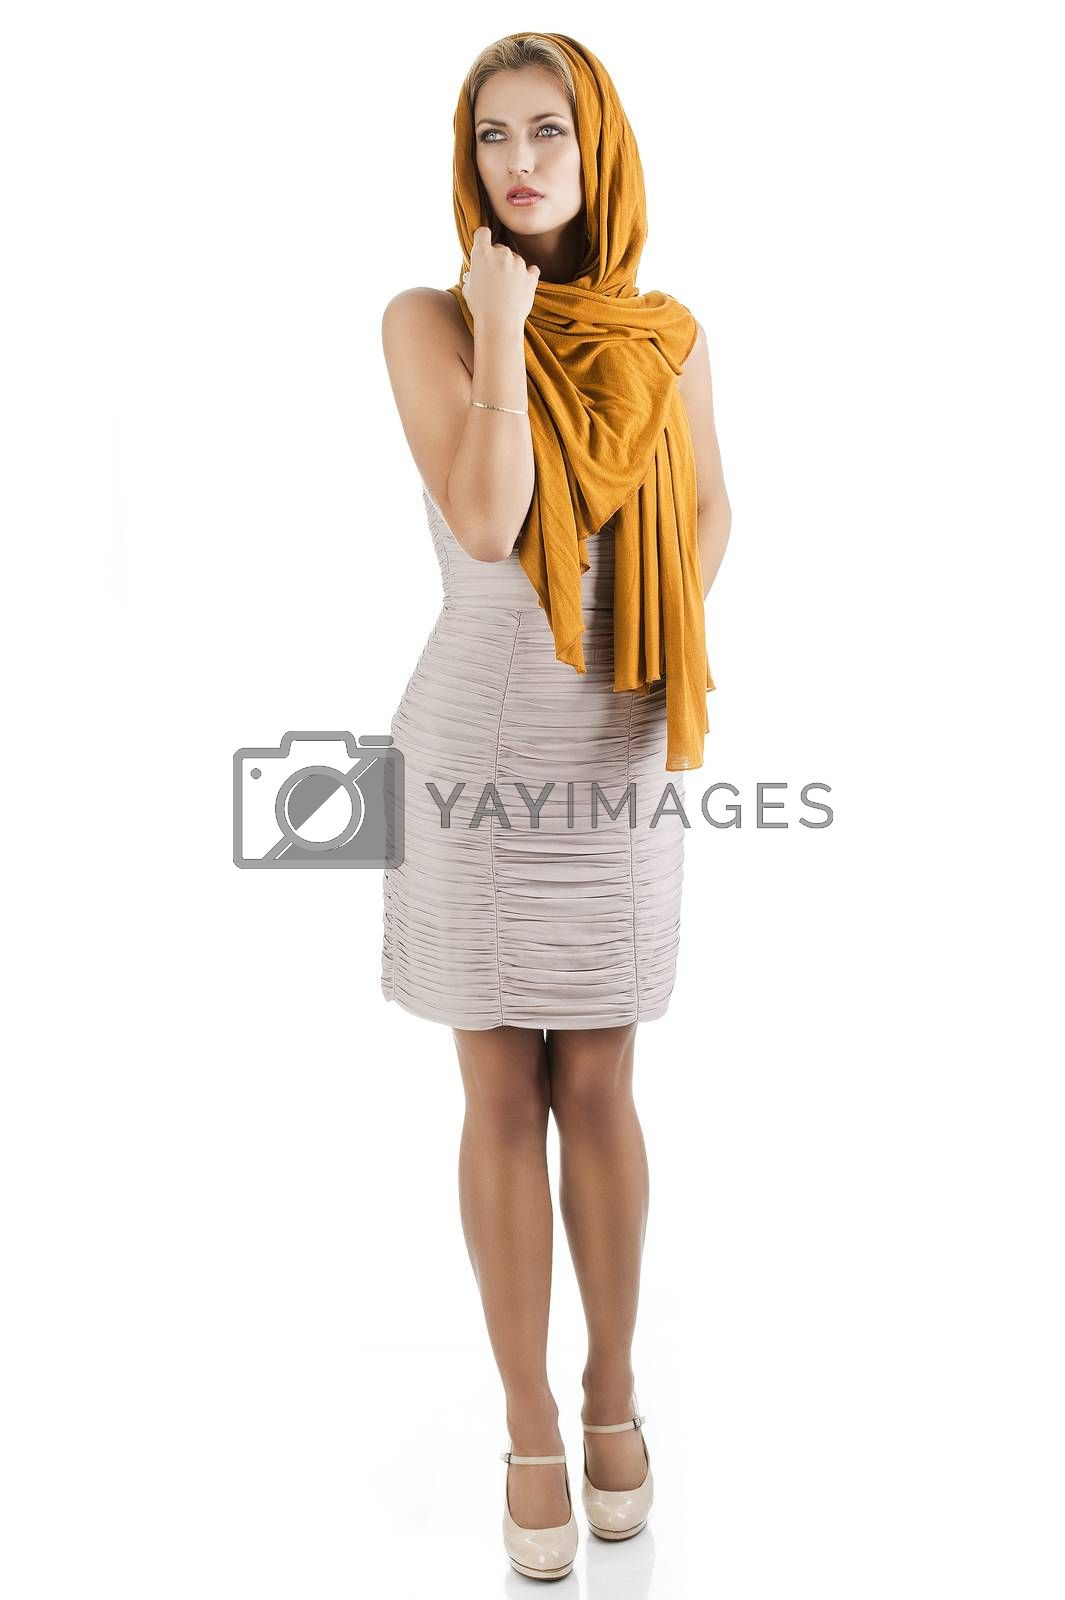 Royalty free image of blond girl in elegant dress, she looks at right by fotoCD